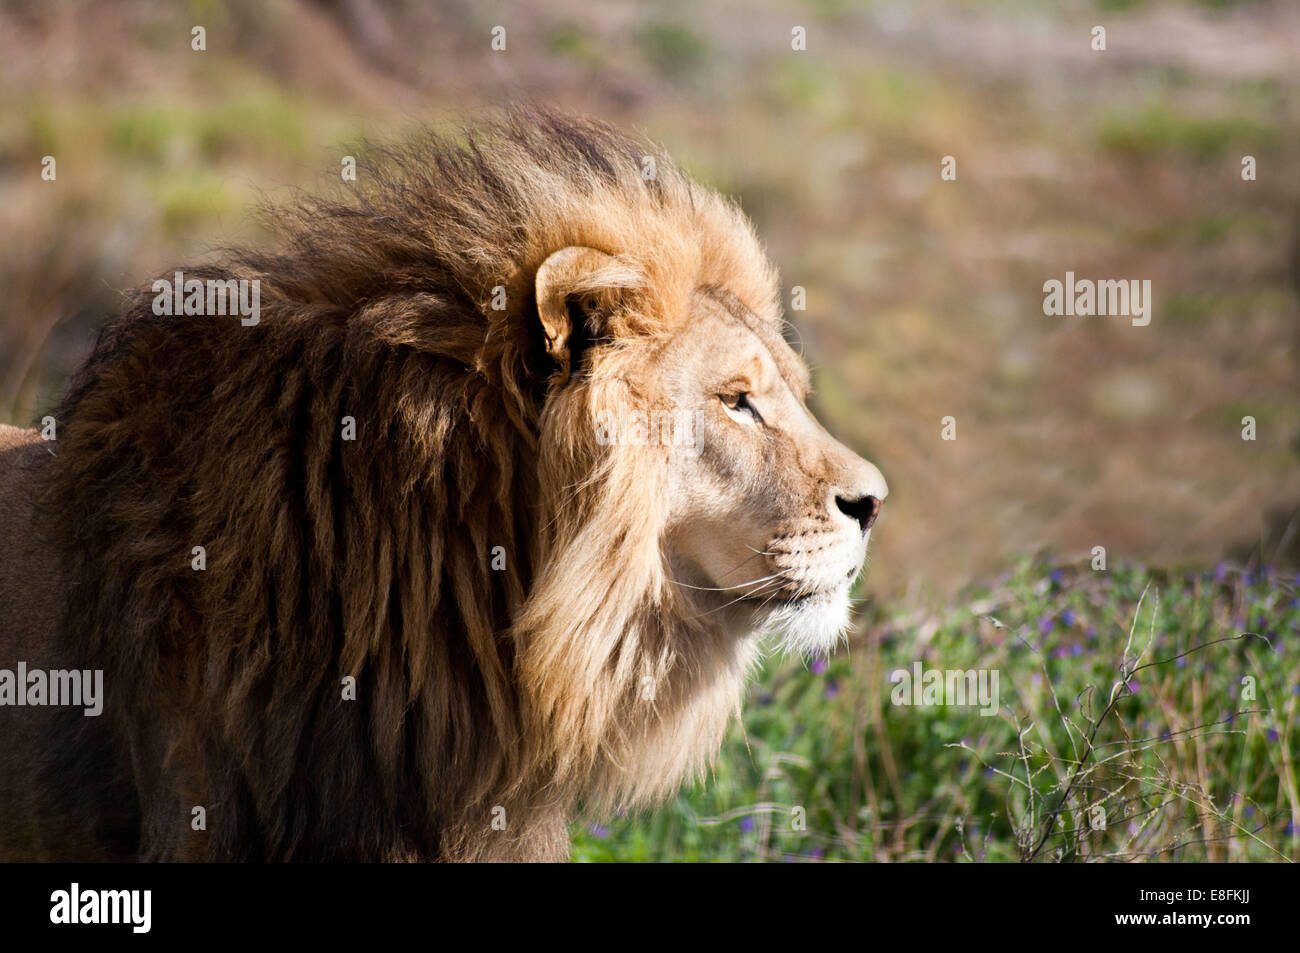 Portrait of a lion, Limpopo, South Africa - Stock Image